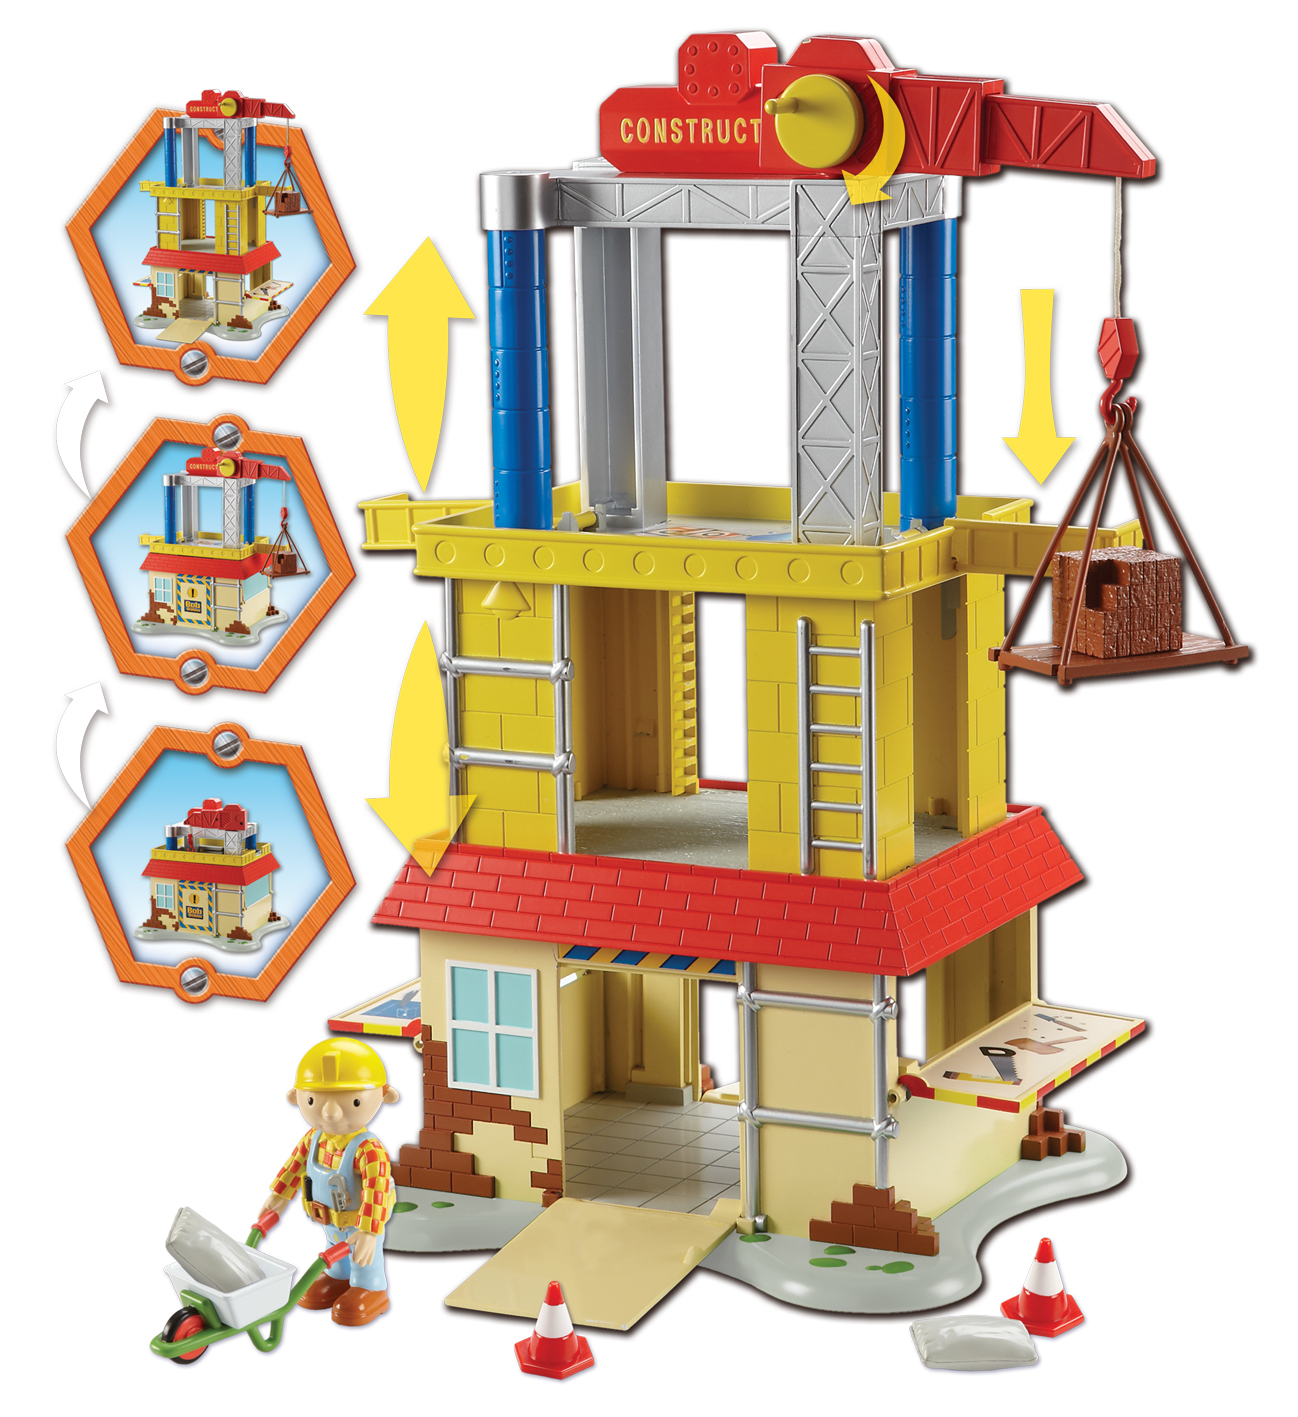 - Deluxe Construction Tower